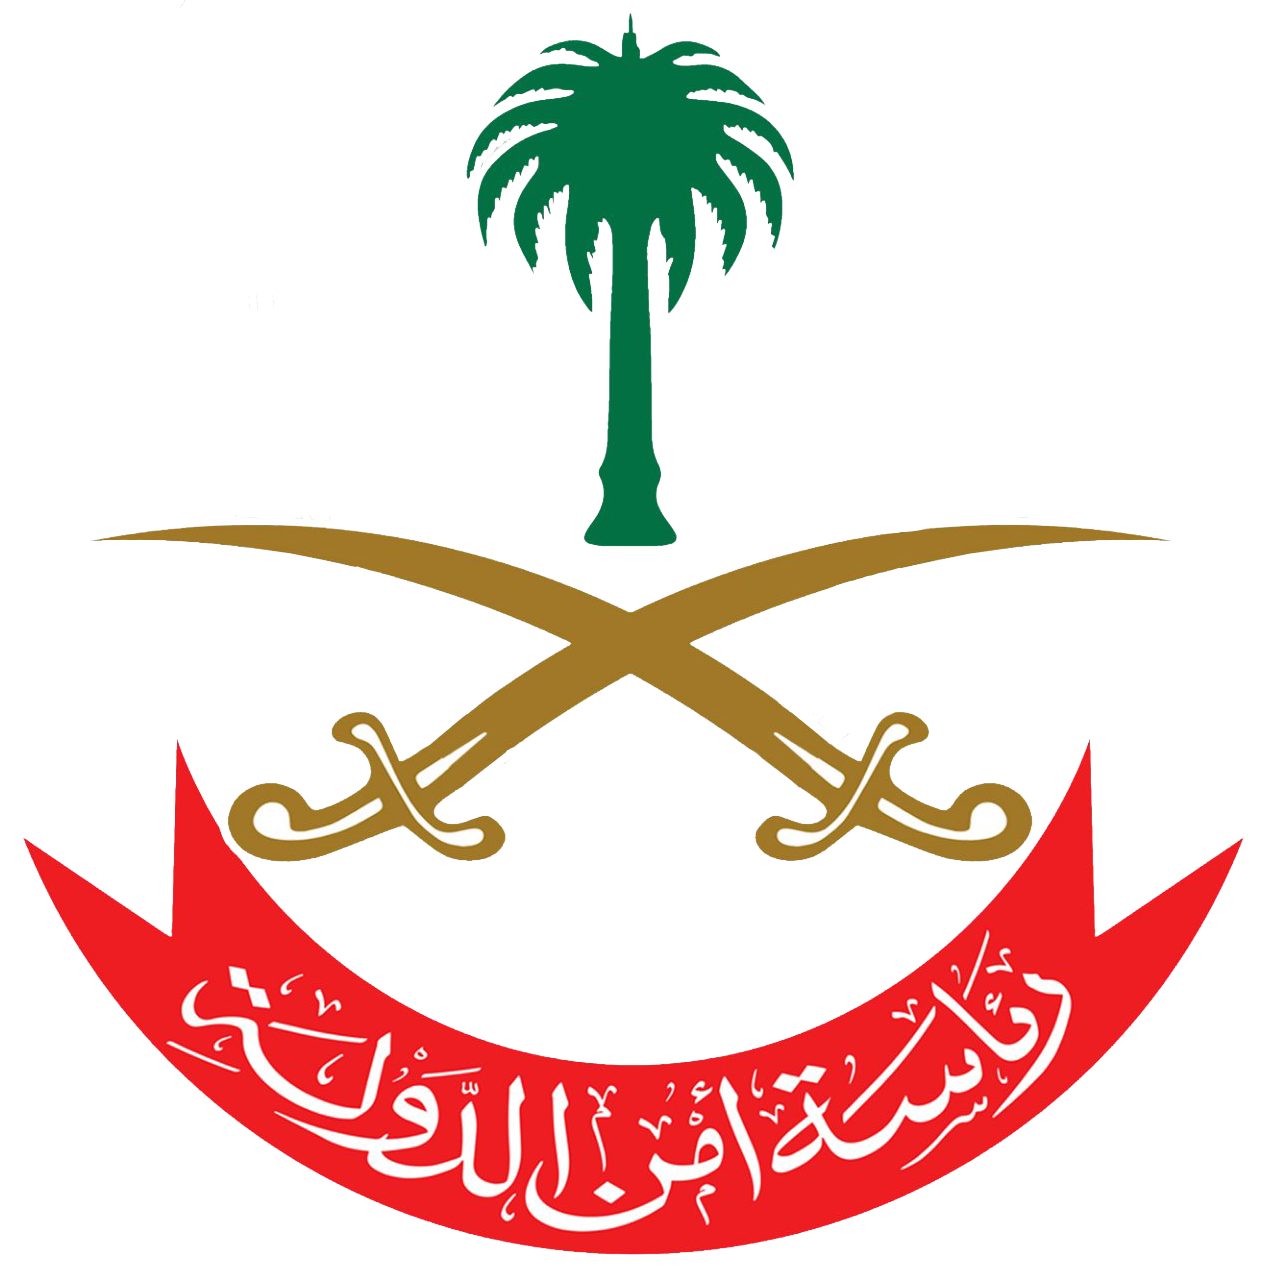 Saudi arabia logo clipart transparent download Presidency of State Security - Wikipedia transparent download